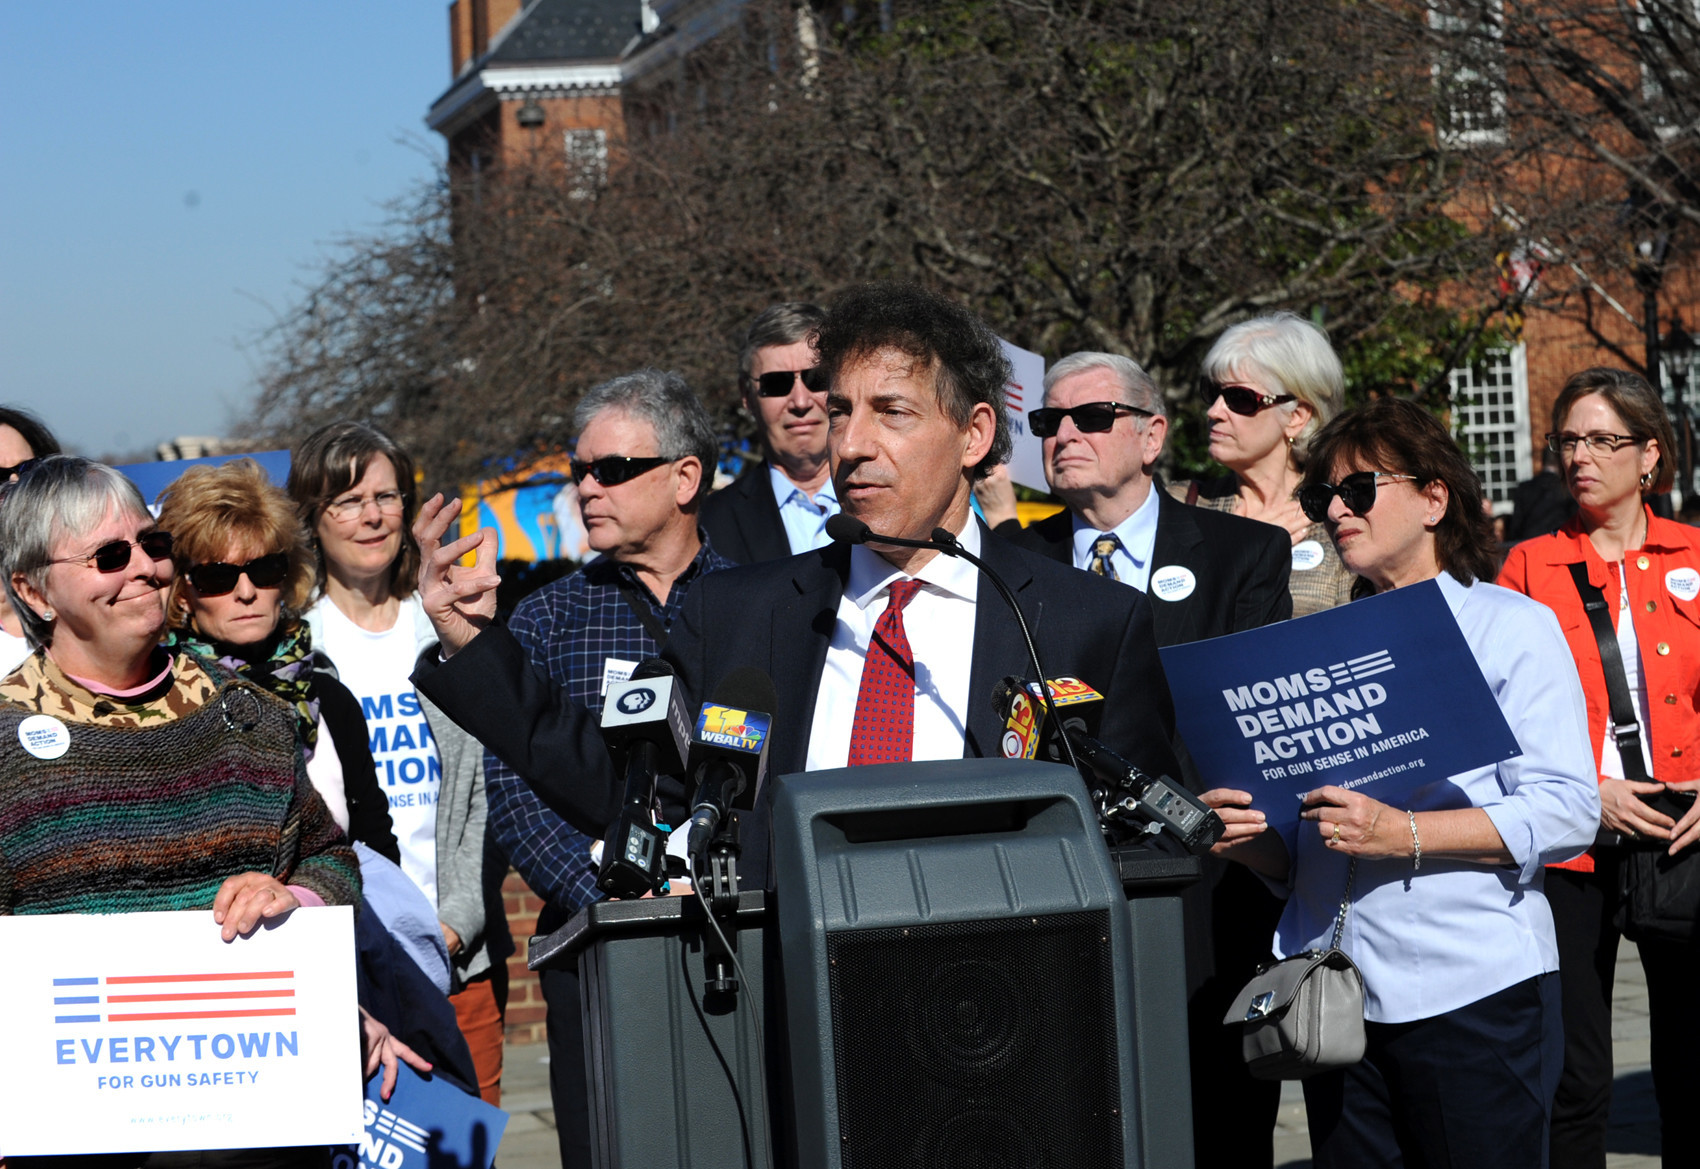 Rep. Jamie Raskin Assigned To Judiciary Committee, Where He Interned Decades Ago